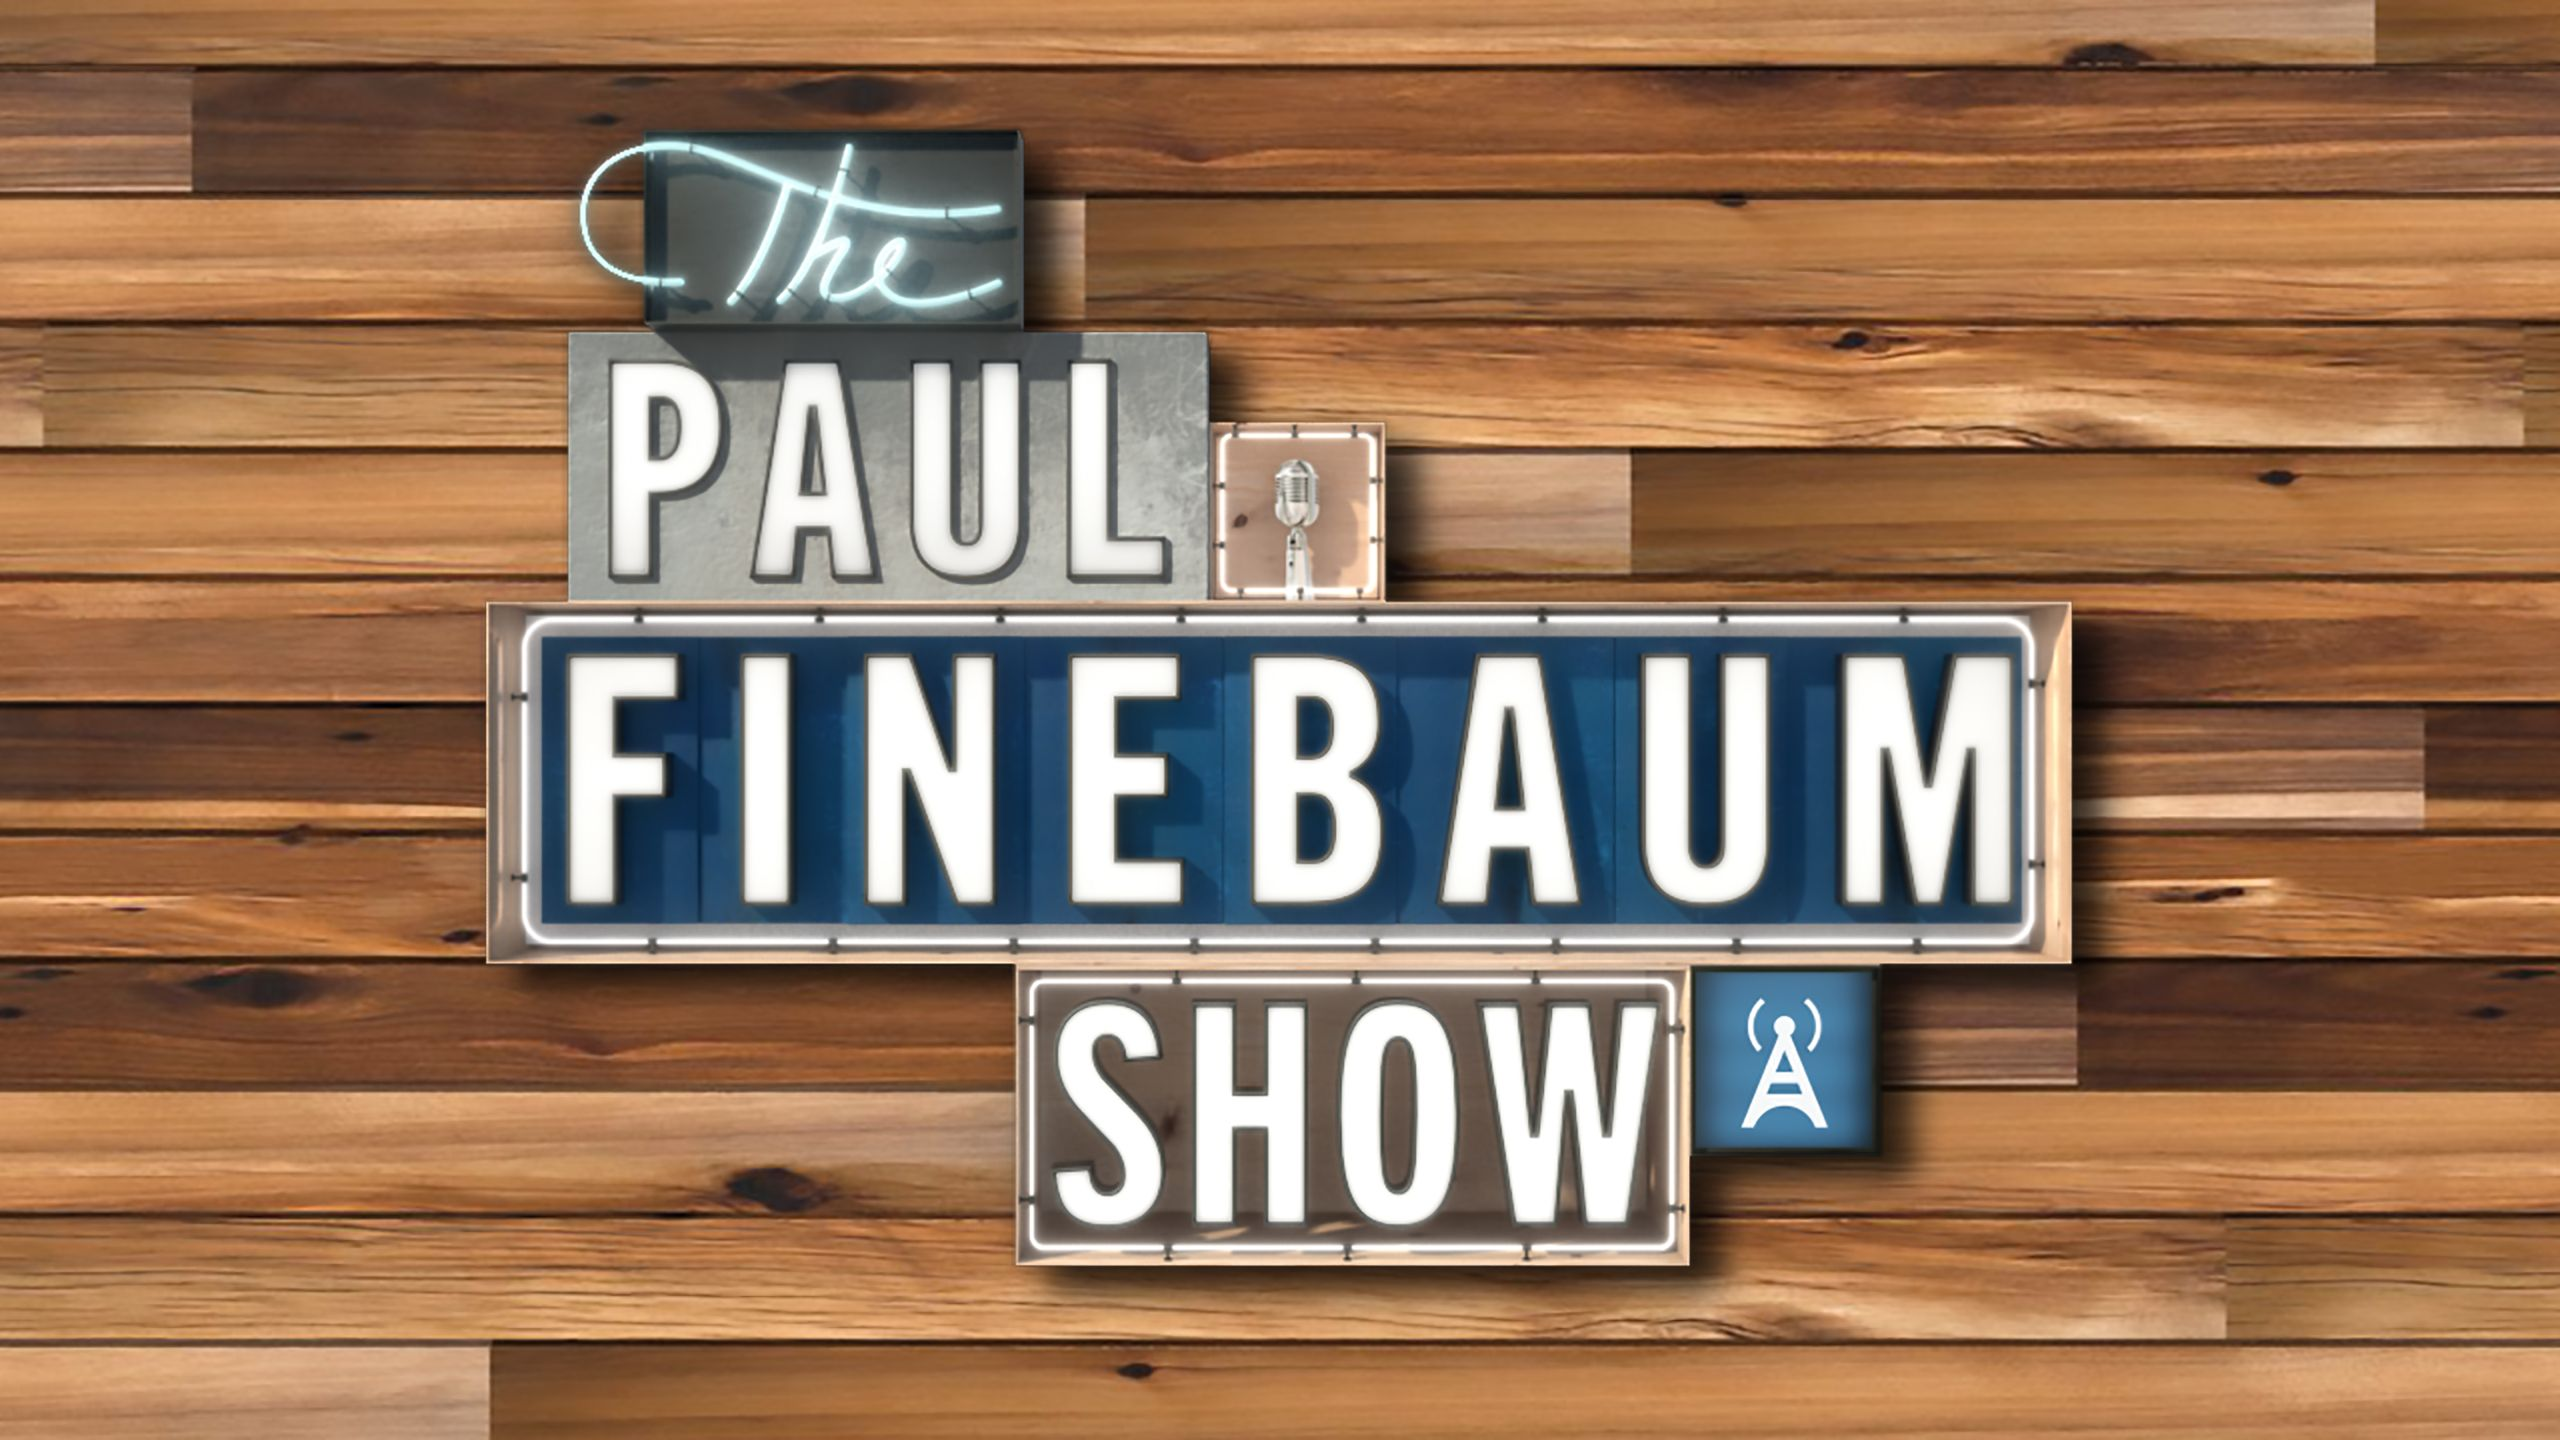 Wed, 10/18 - The Paul Finebaum Show